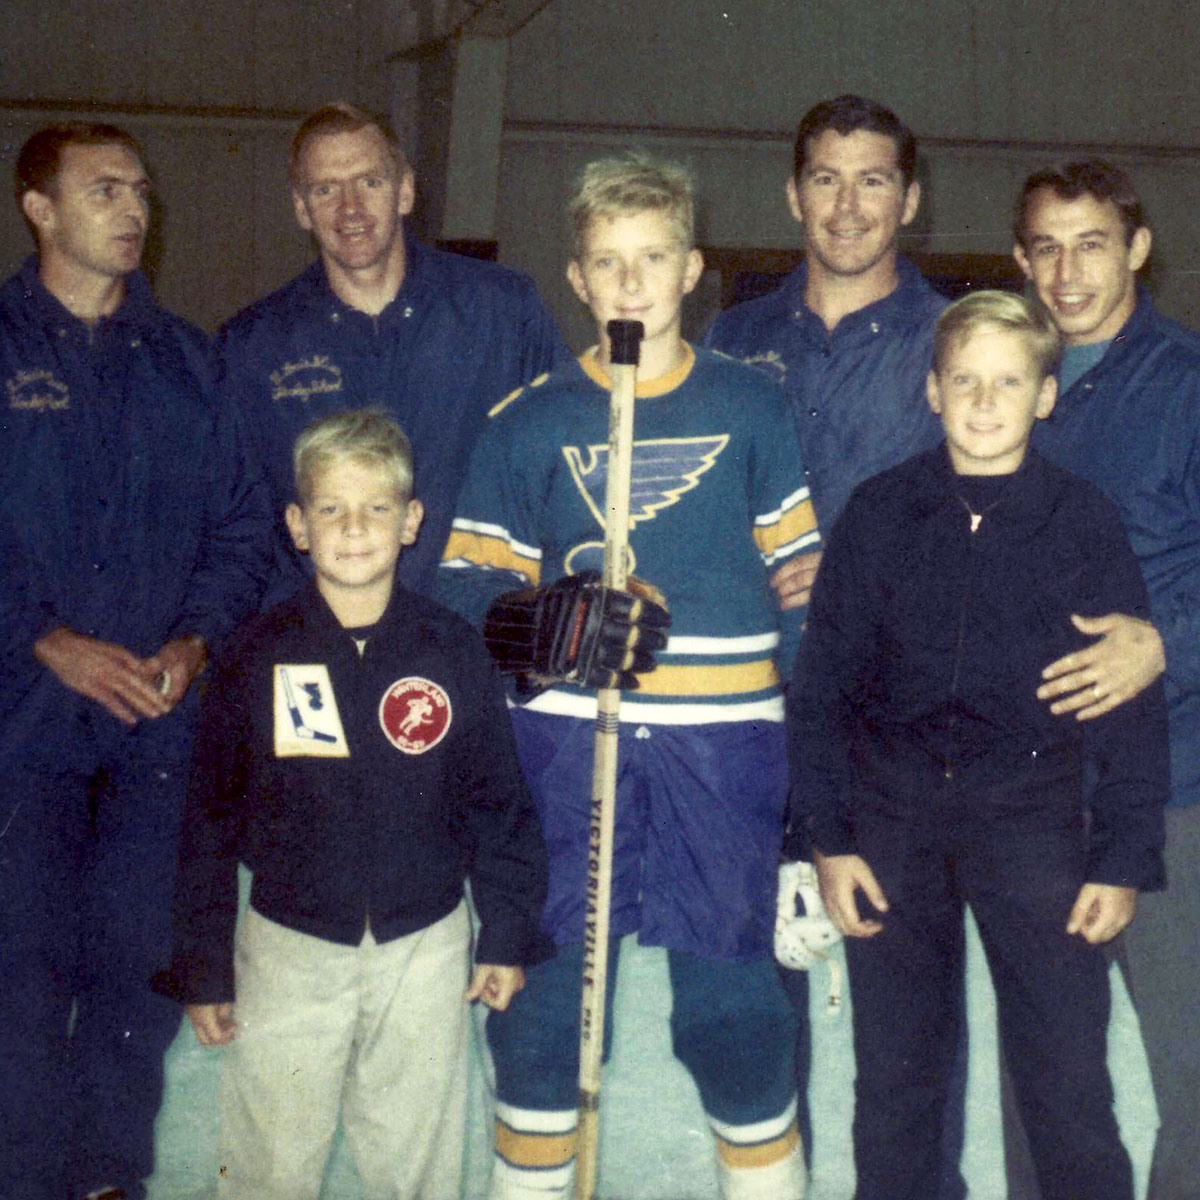 Young Kriegshauser Brothers with former St. Louis Blues players